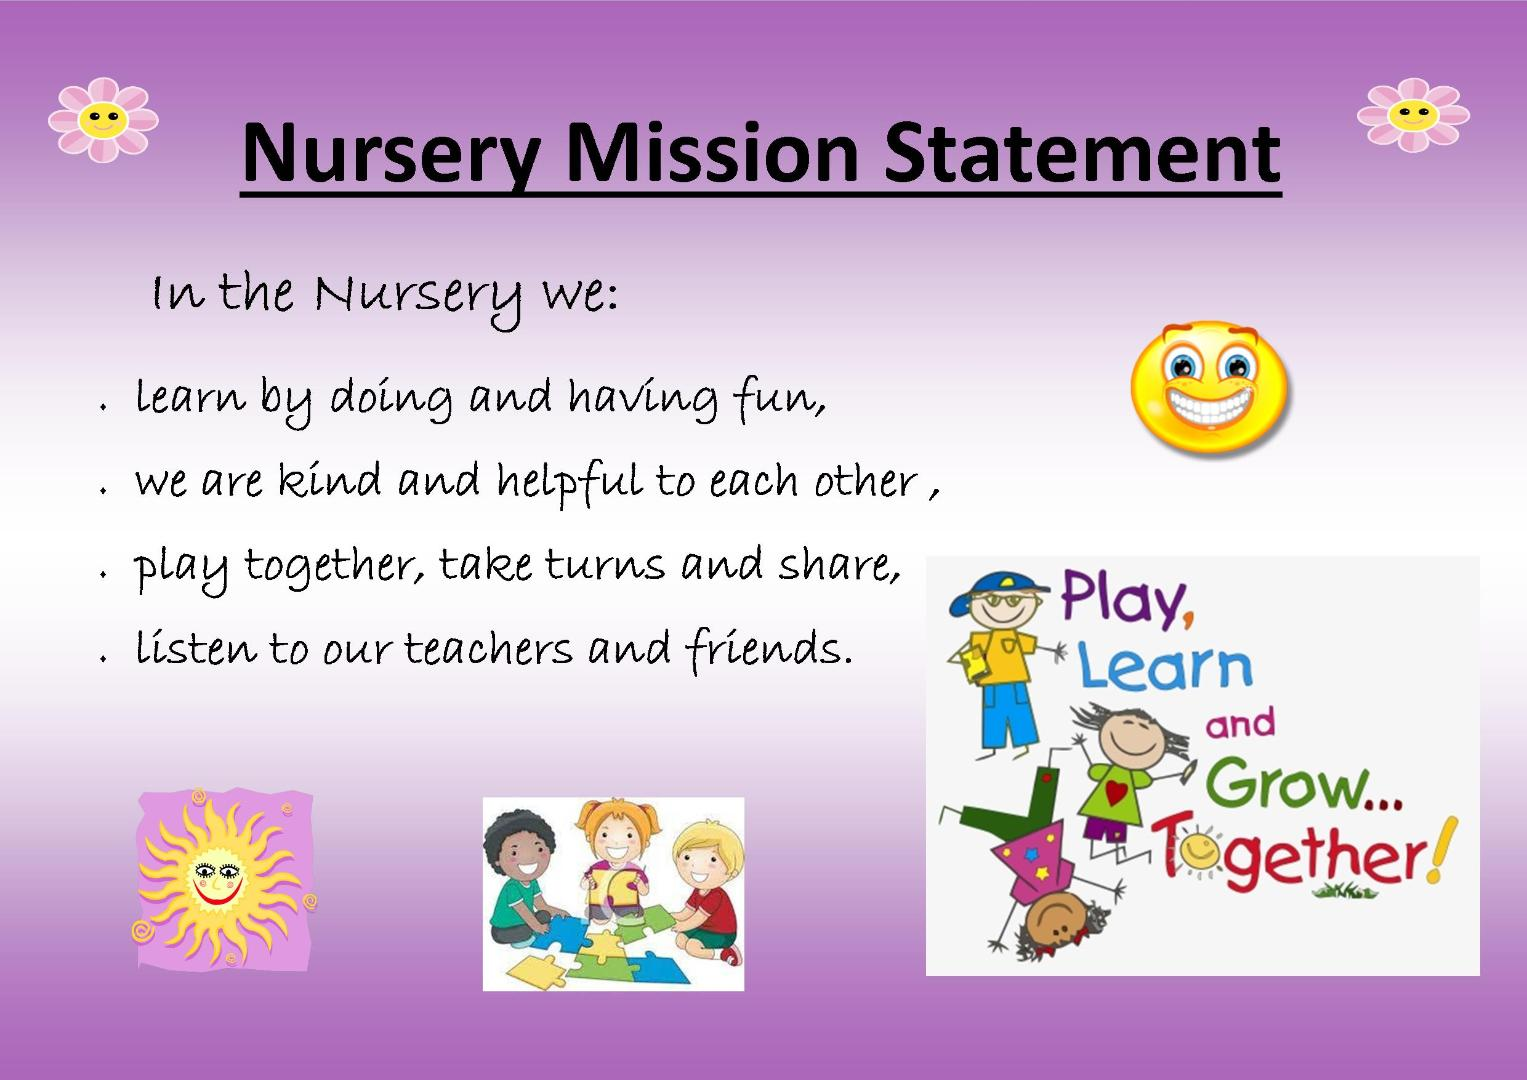 nurserymissionstatement